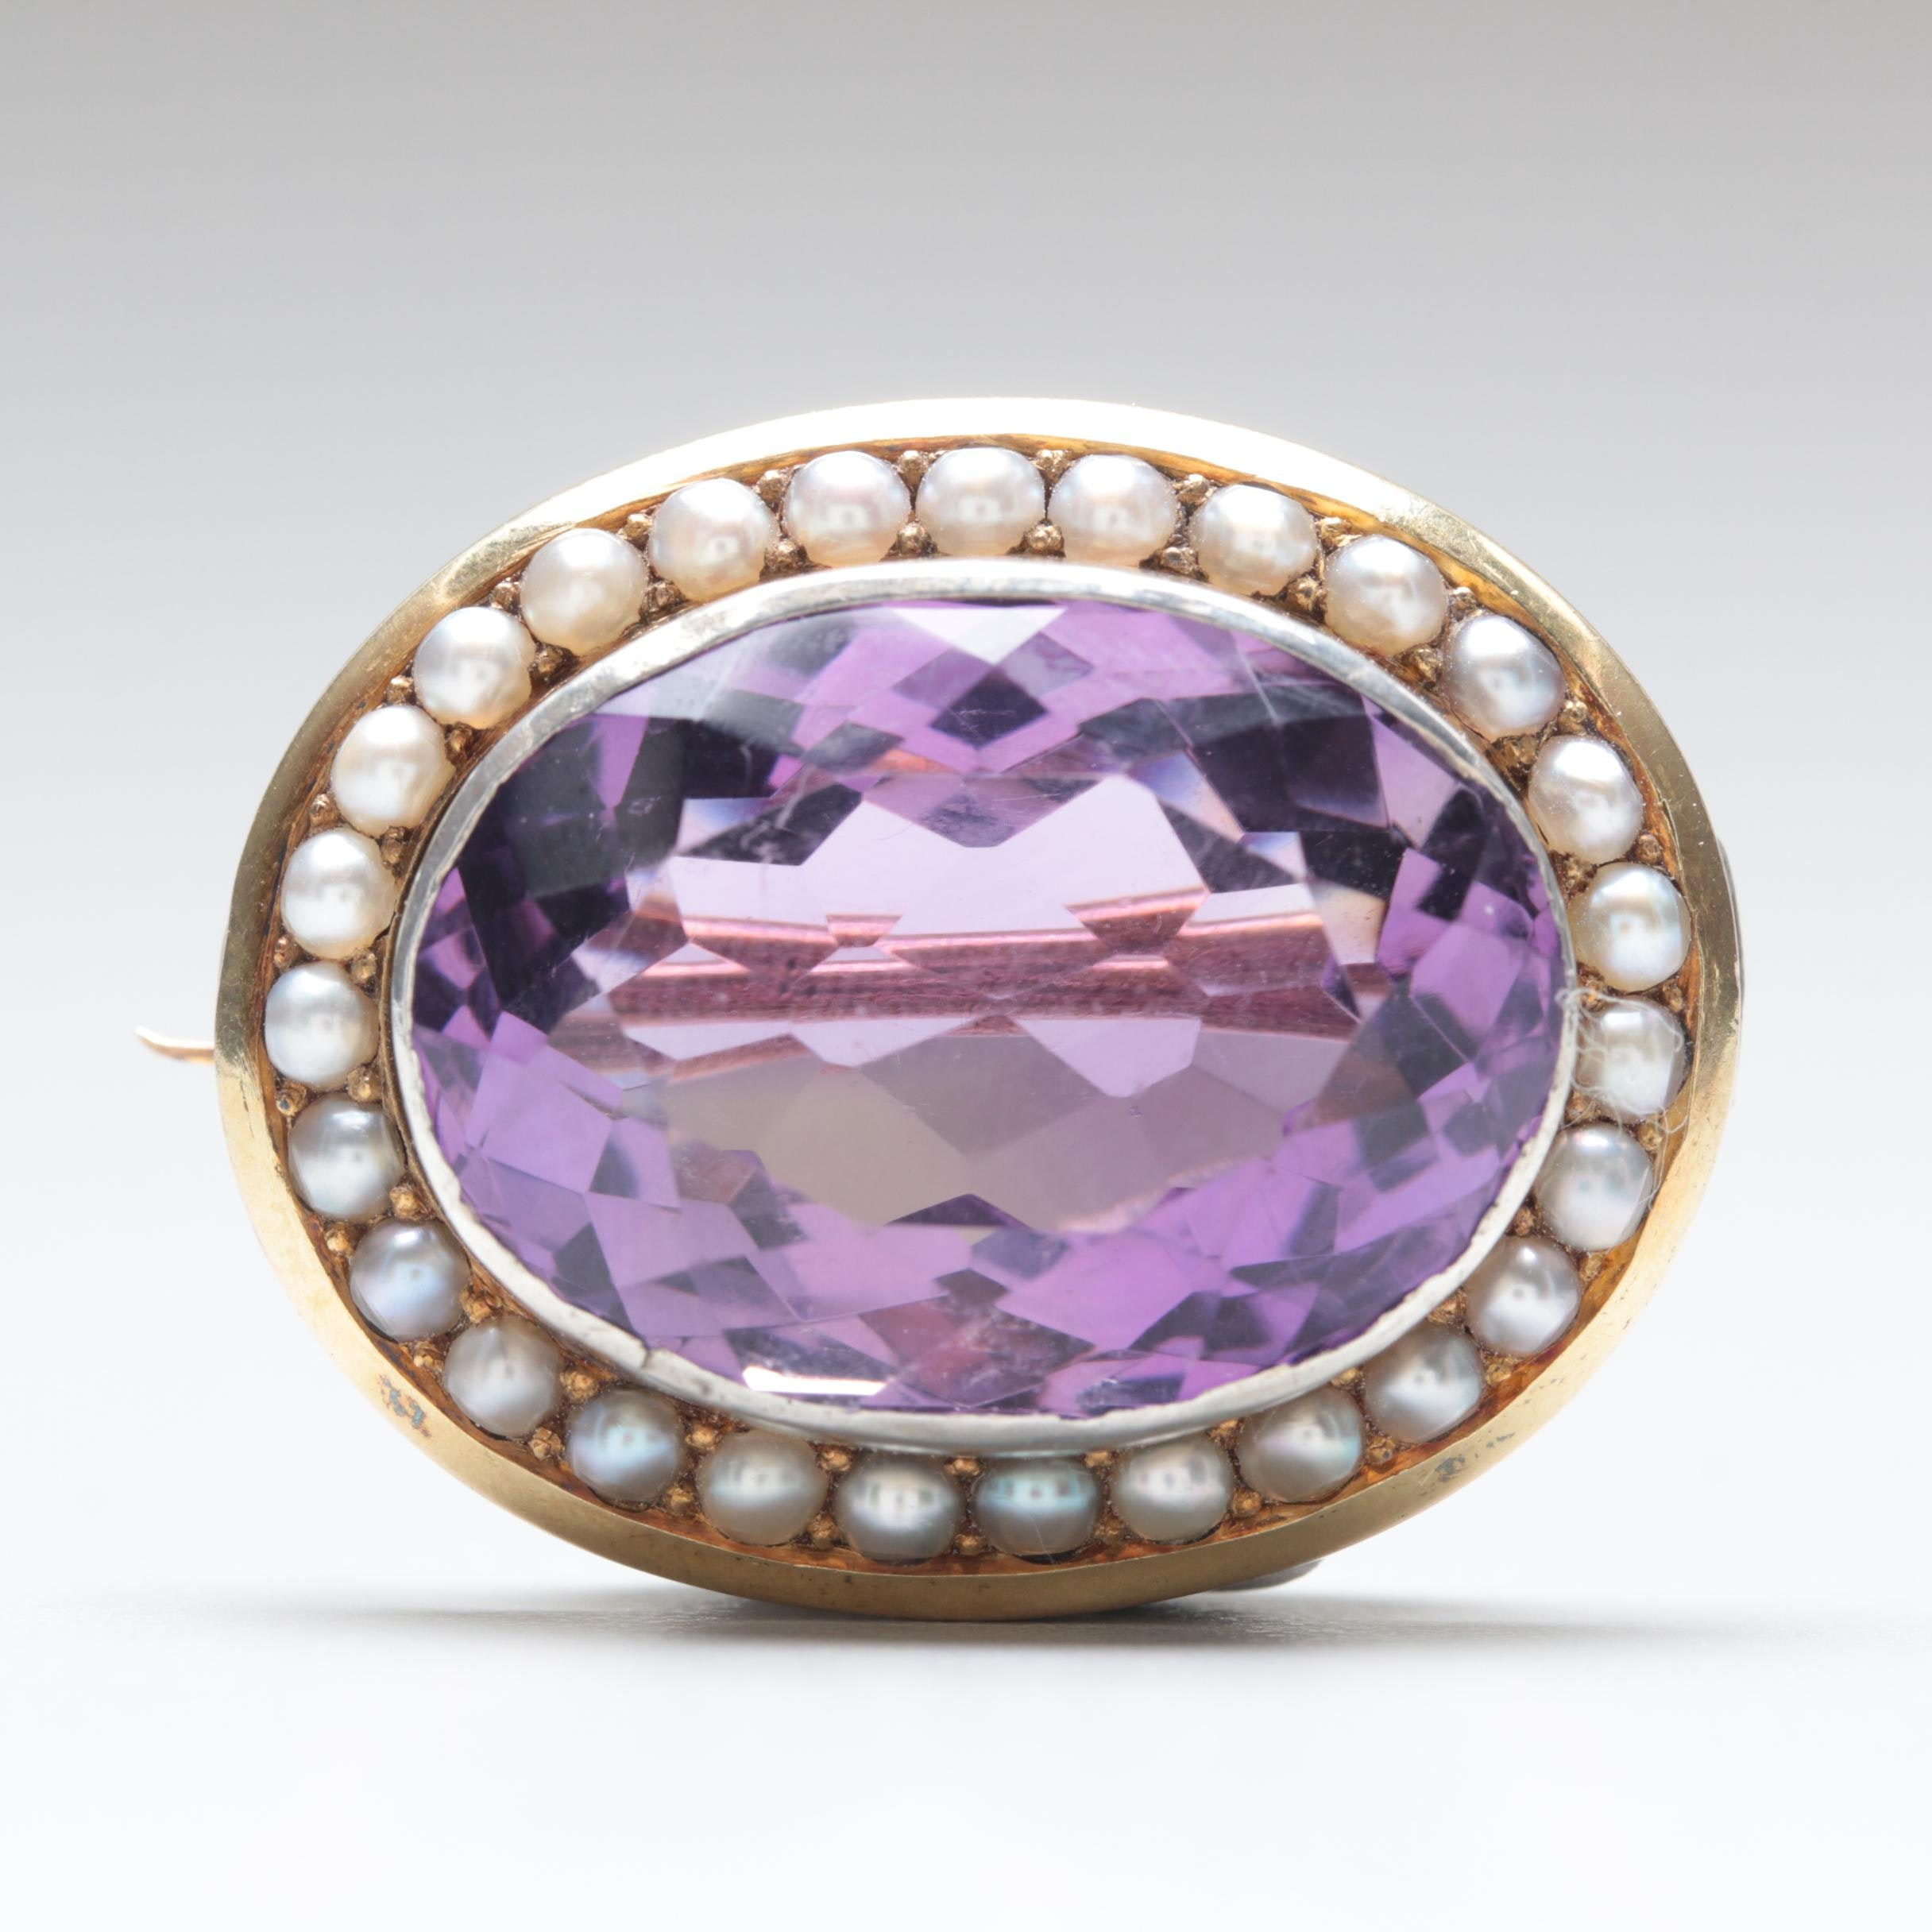 14K Yellow Gold 23.35 CT Amethyst and Seed Pearl Brooch